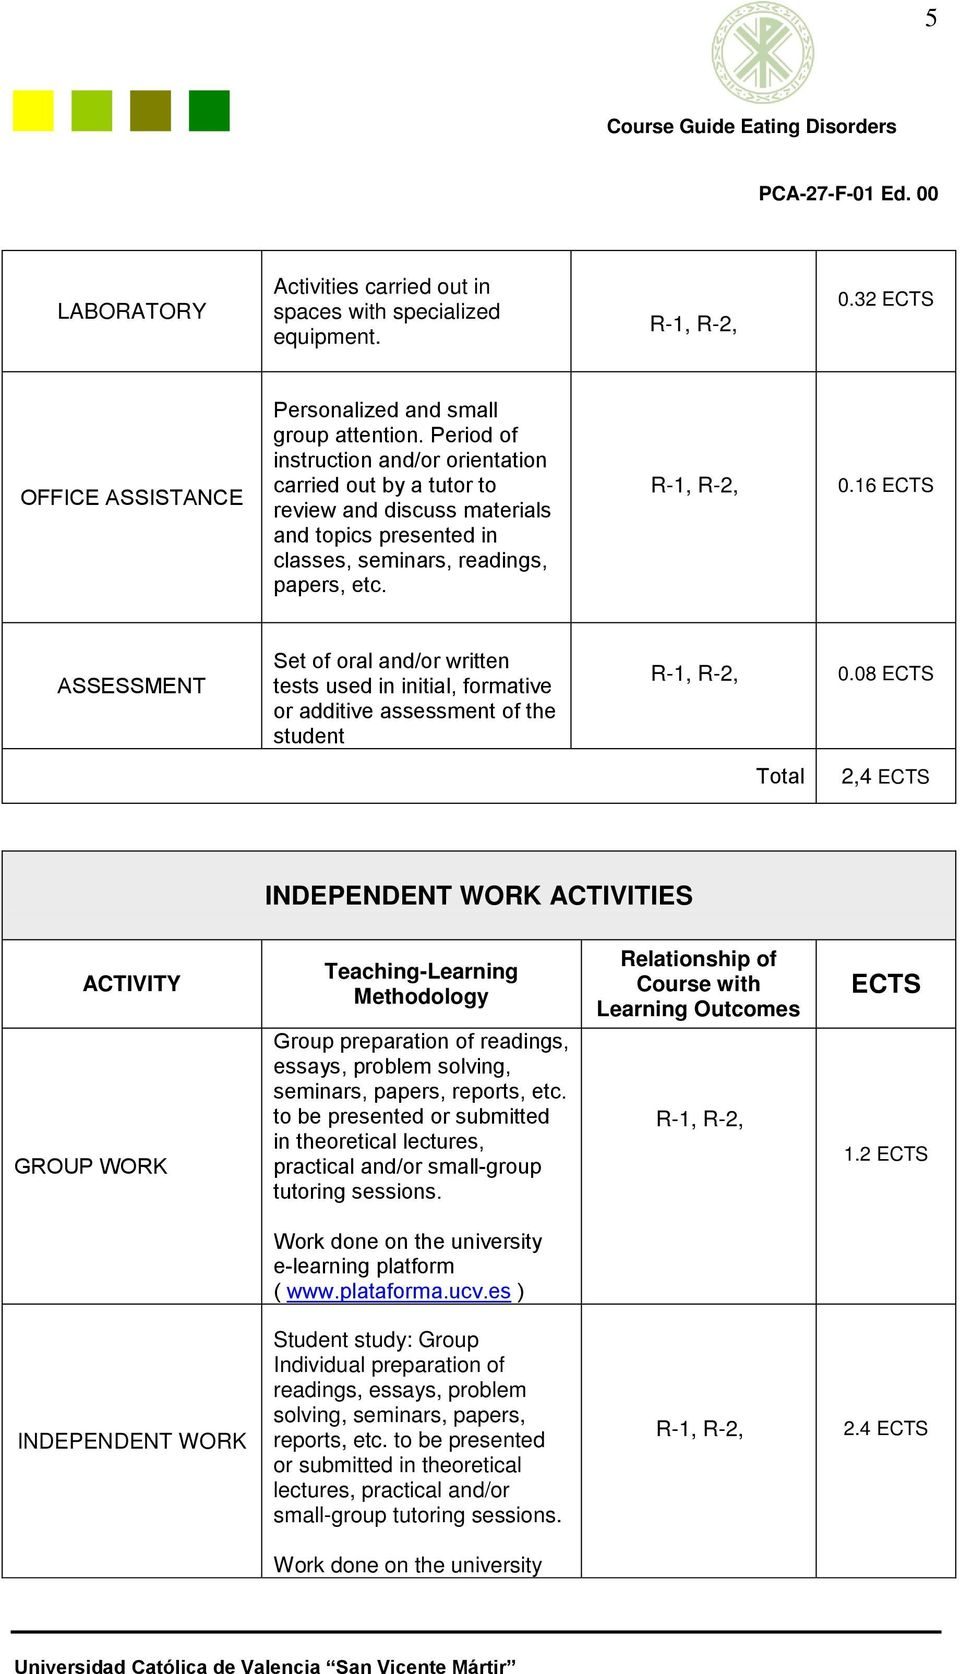 16 ECTS ASSESSMENT Set of oral and/or written tests used in initial, formative or additive assessment of the student 0.